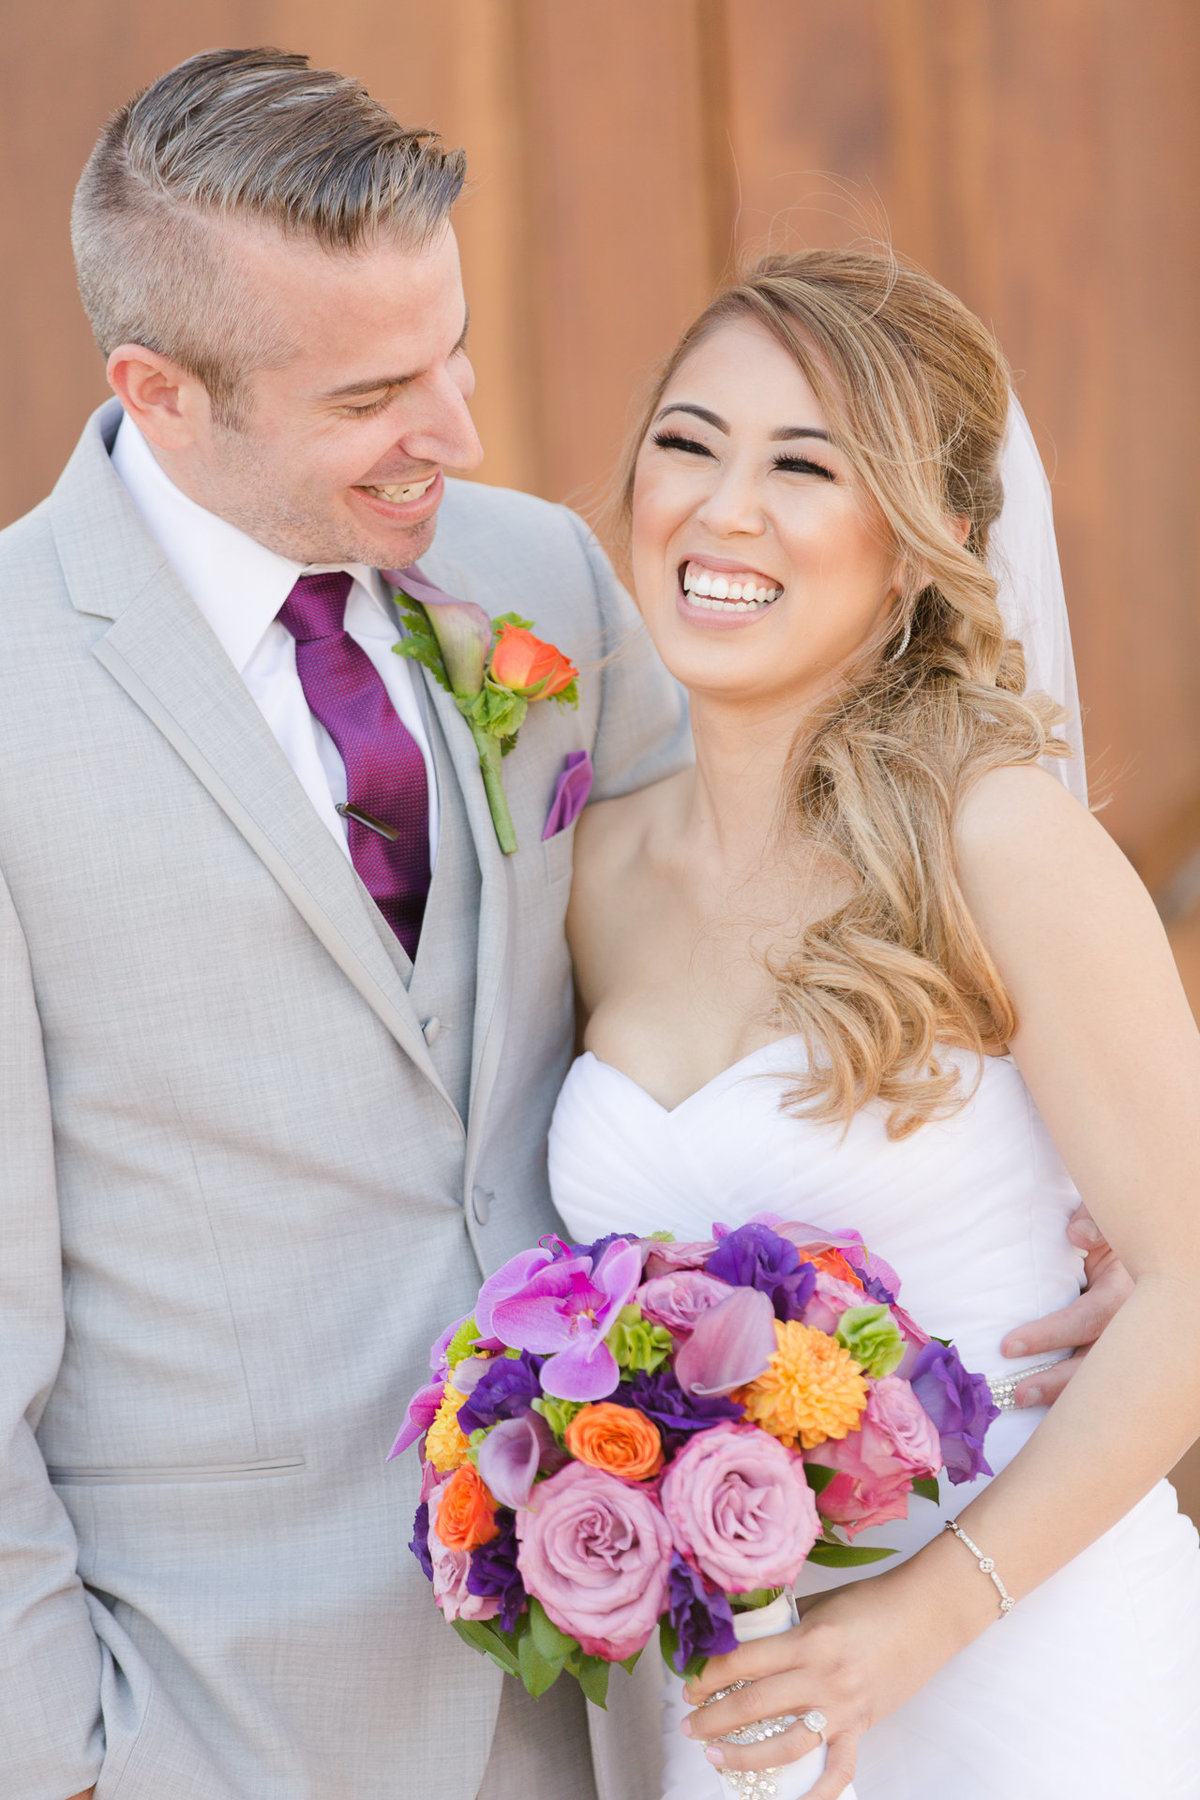 Groom and bride smiling during their first look in the villa de amore garden by matty fran photography